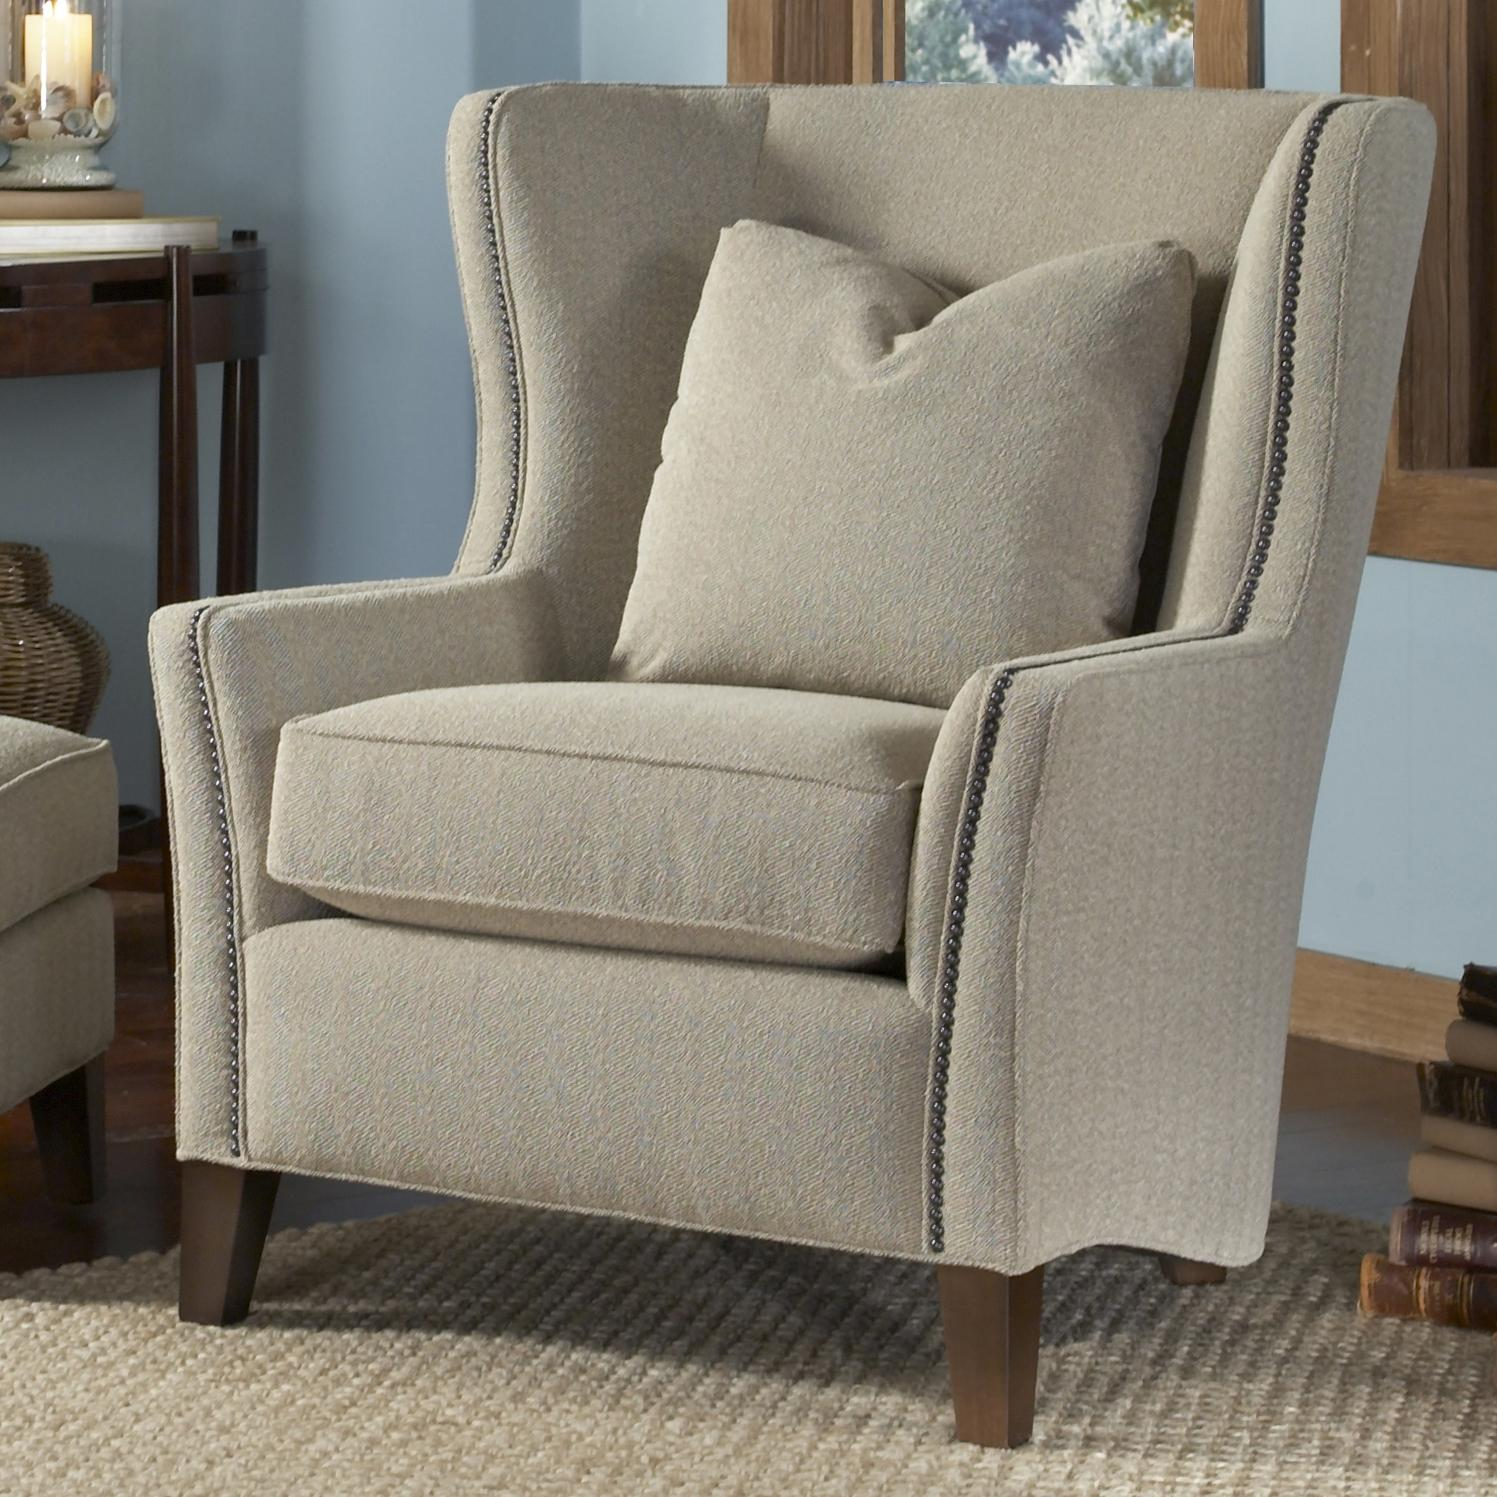 Smith Brothers Accent Chairs and Ottomans SB 82530